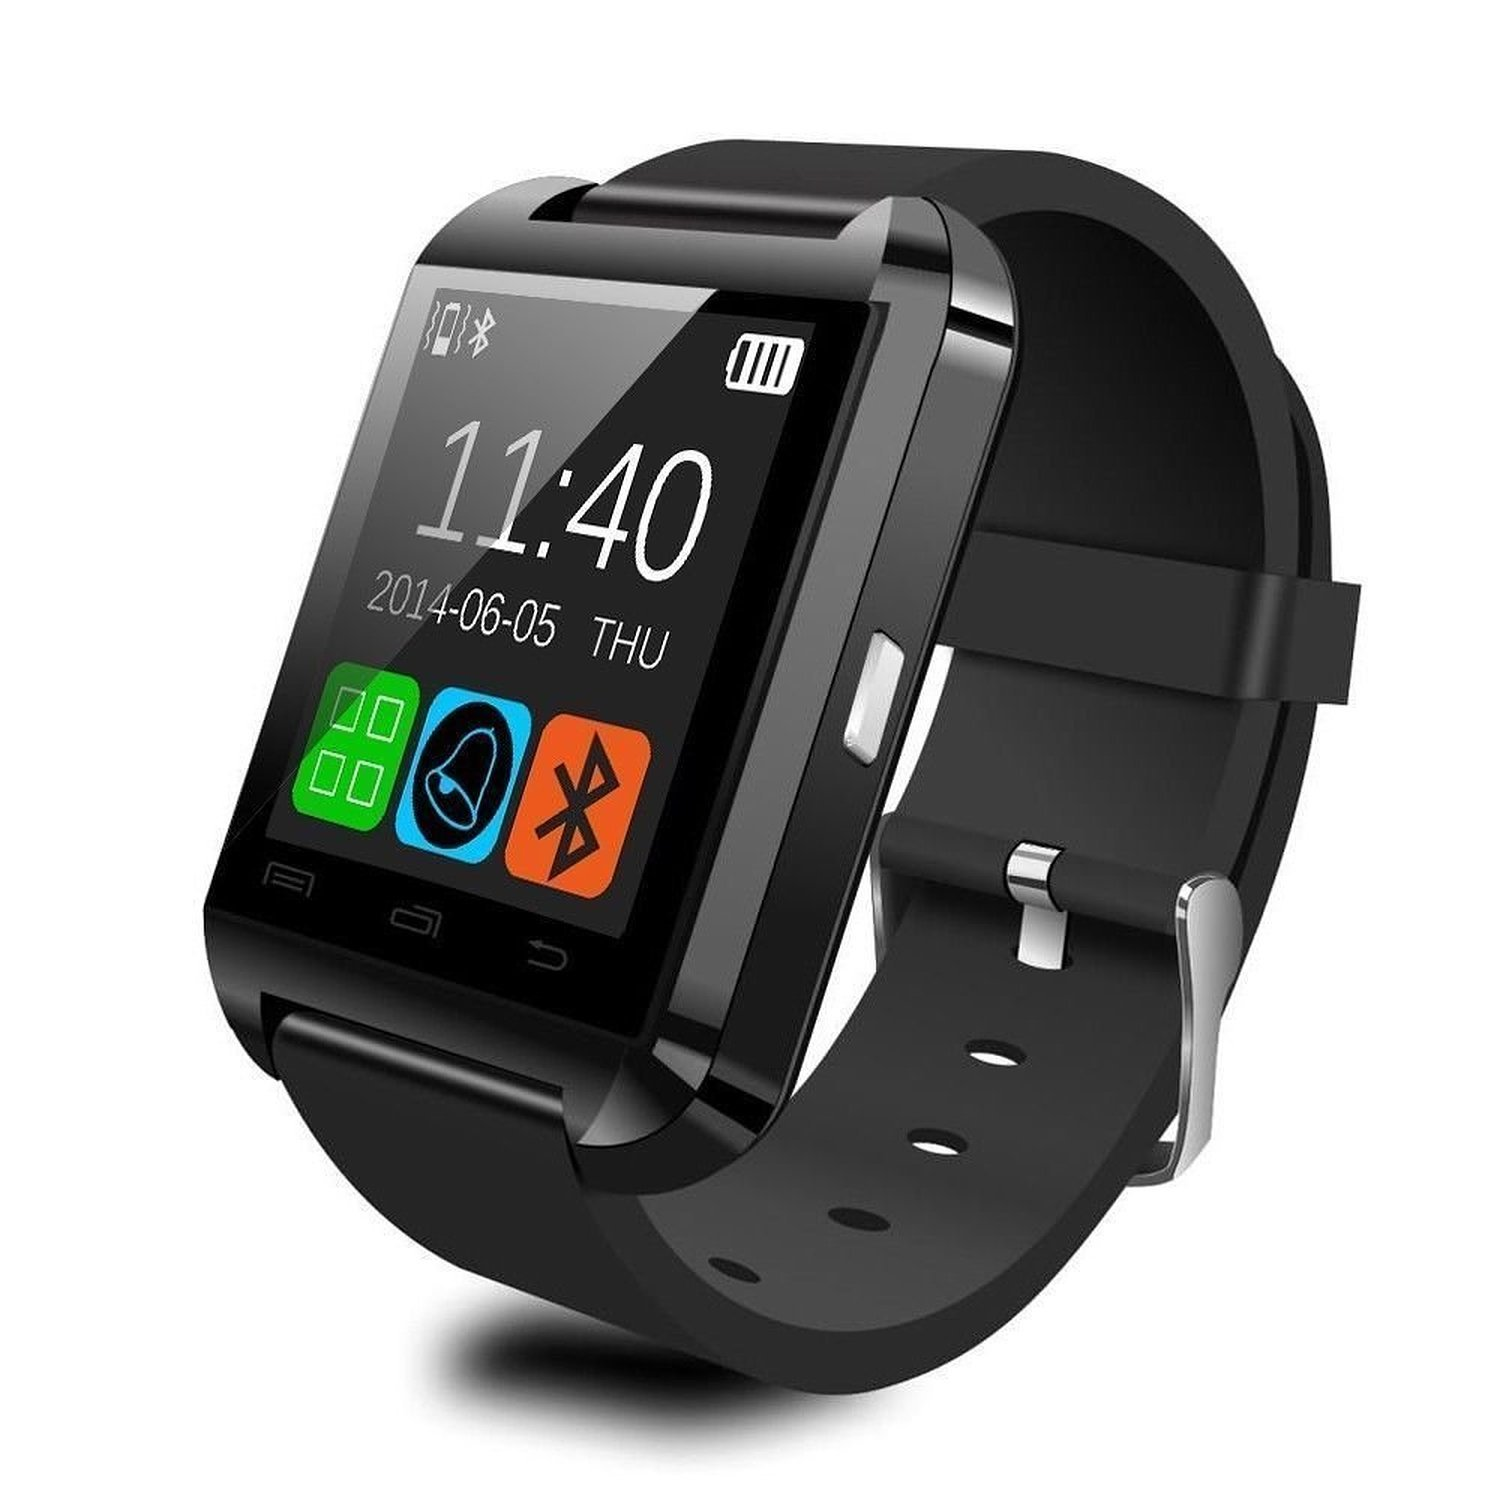 bceb1bddd Amazon.com  Fanmis Bluetooth Smart Watch Wrist Wrap Watch Phone for IOS  Apple Iphone 4 4s 5 5c 5s Android Samsung S2 s3 s4 note 2 note 3 HTC Nokia.